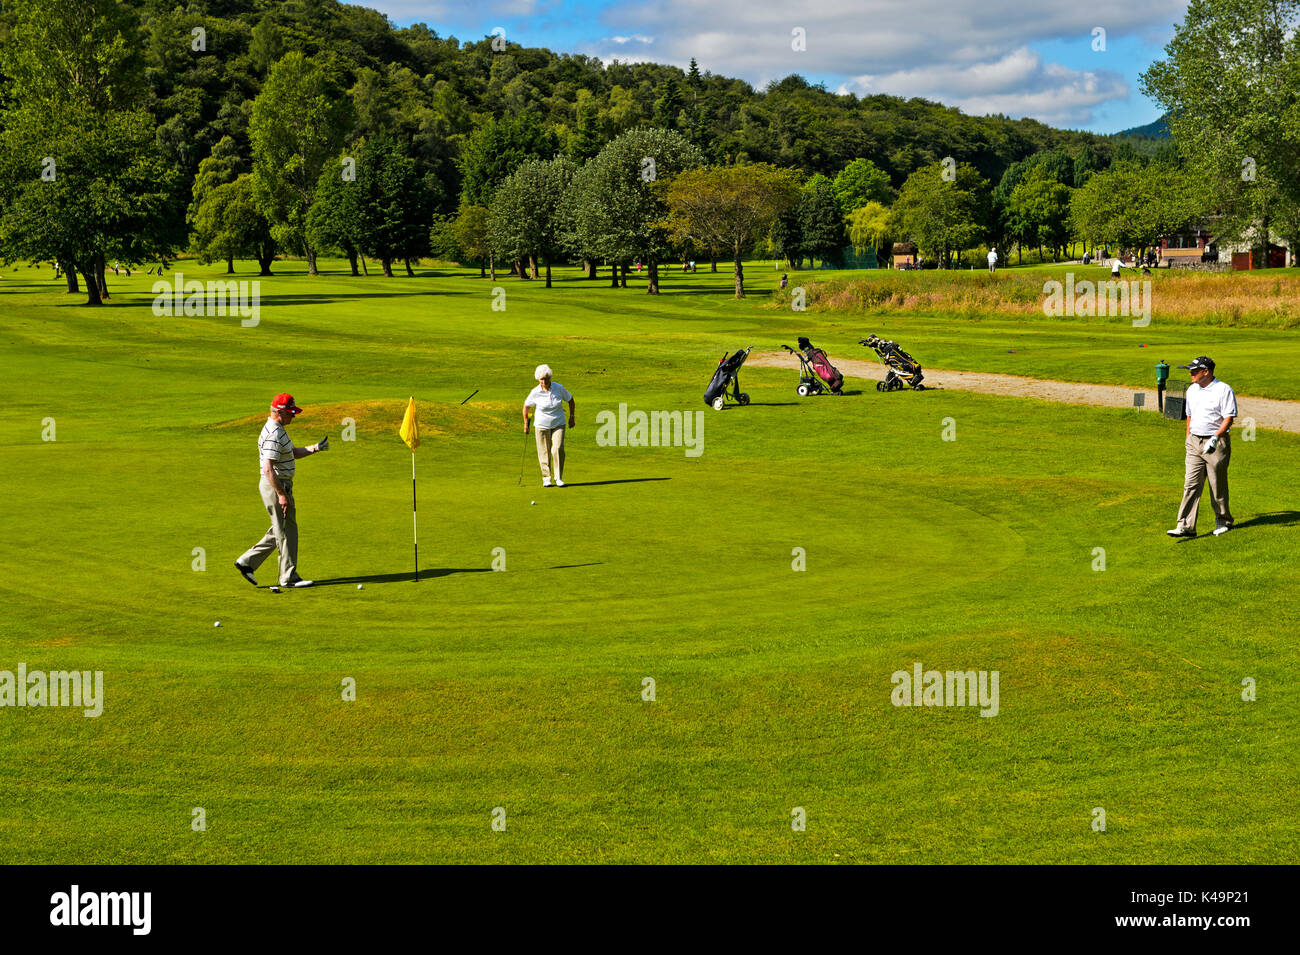 Torvean Golf Club On The Outskirts Of Inverness, Scotland, Great Britain - Stock Image